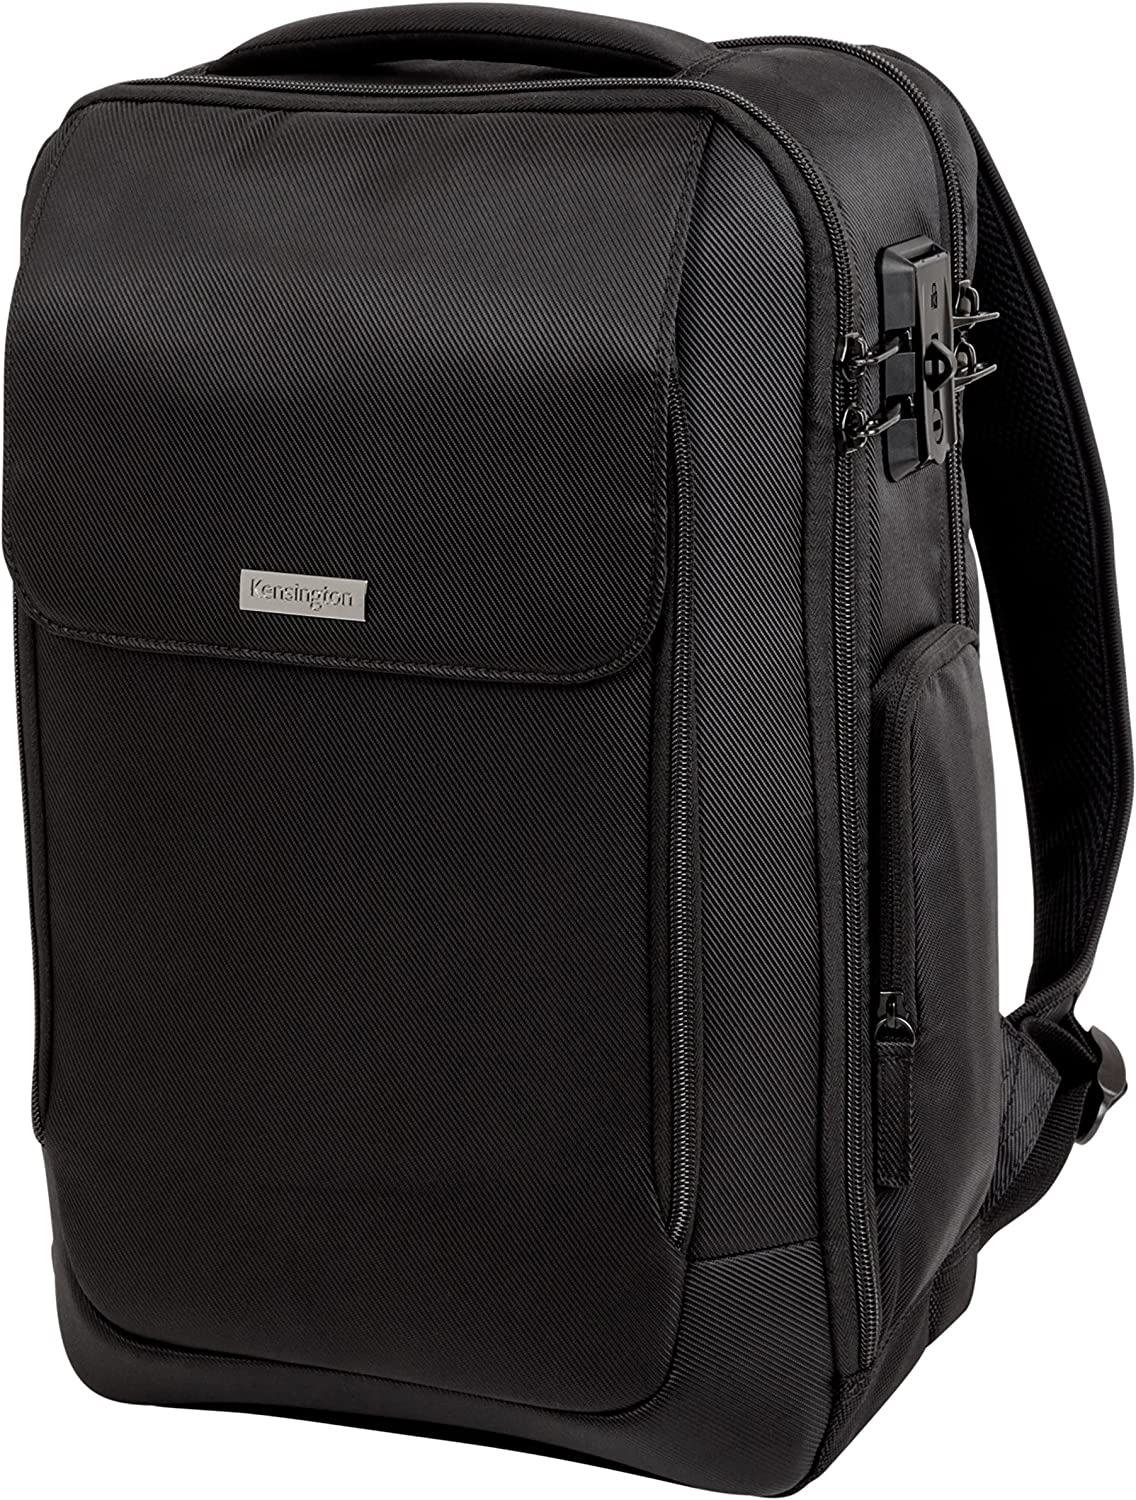 "Kensington SecureTrek 15"" Lockable Anti-Theft Laptop Backpack (K98617WW)"